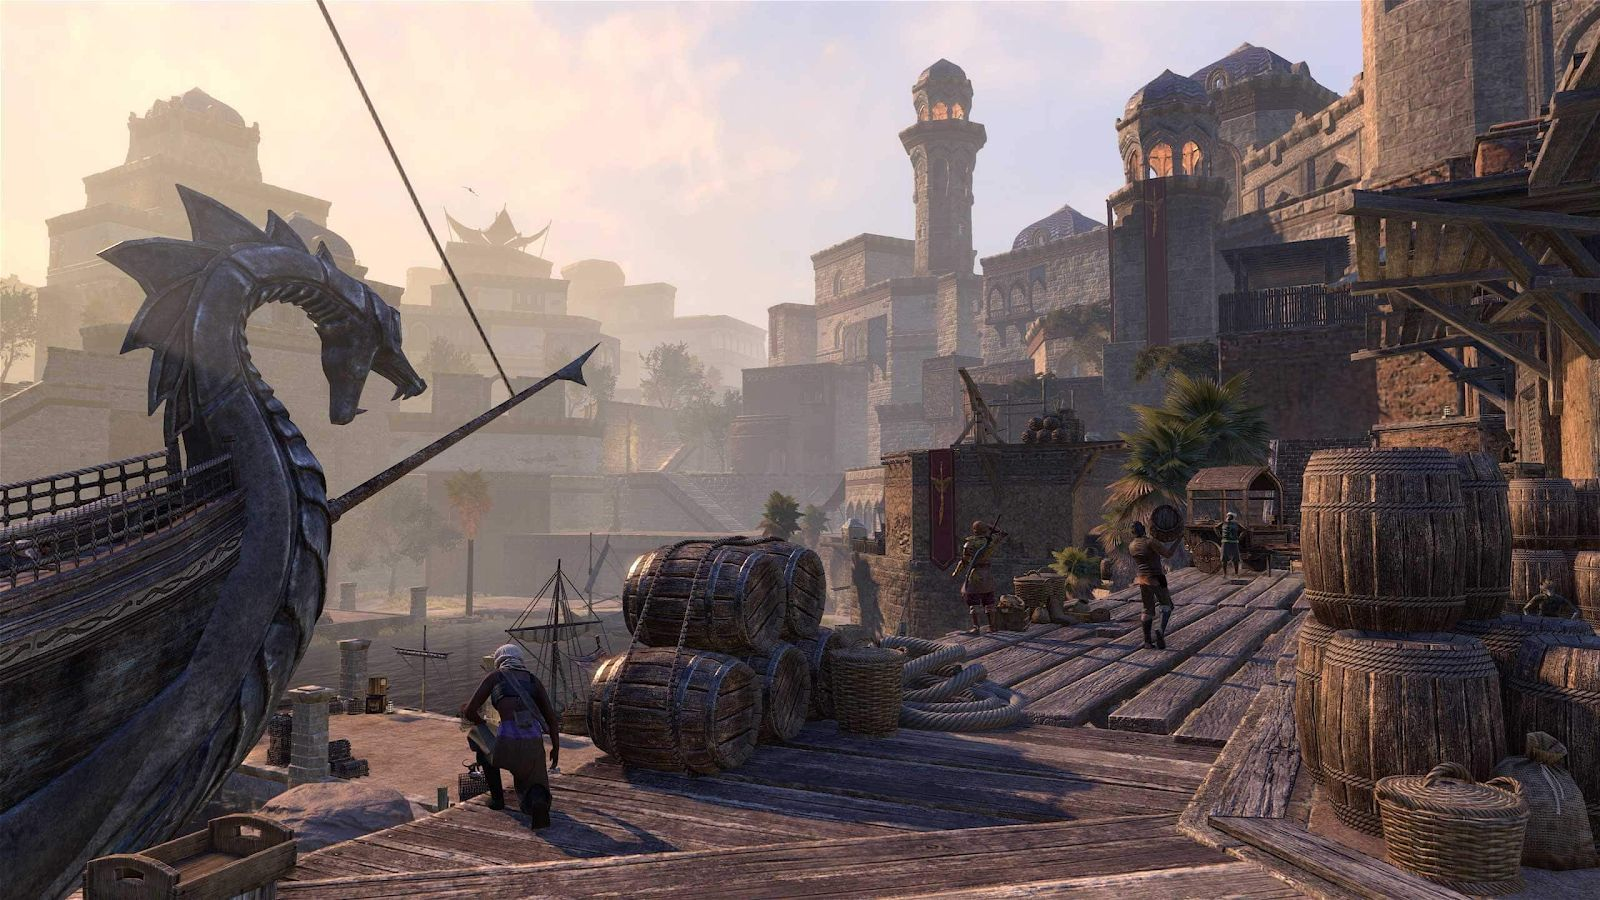 /the-elder-scrolls-online-console-enhanced-version-arrives-to-next-gen-systems-o0p3355 feature image